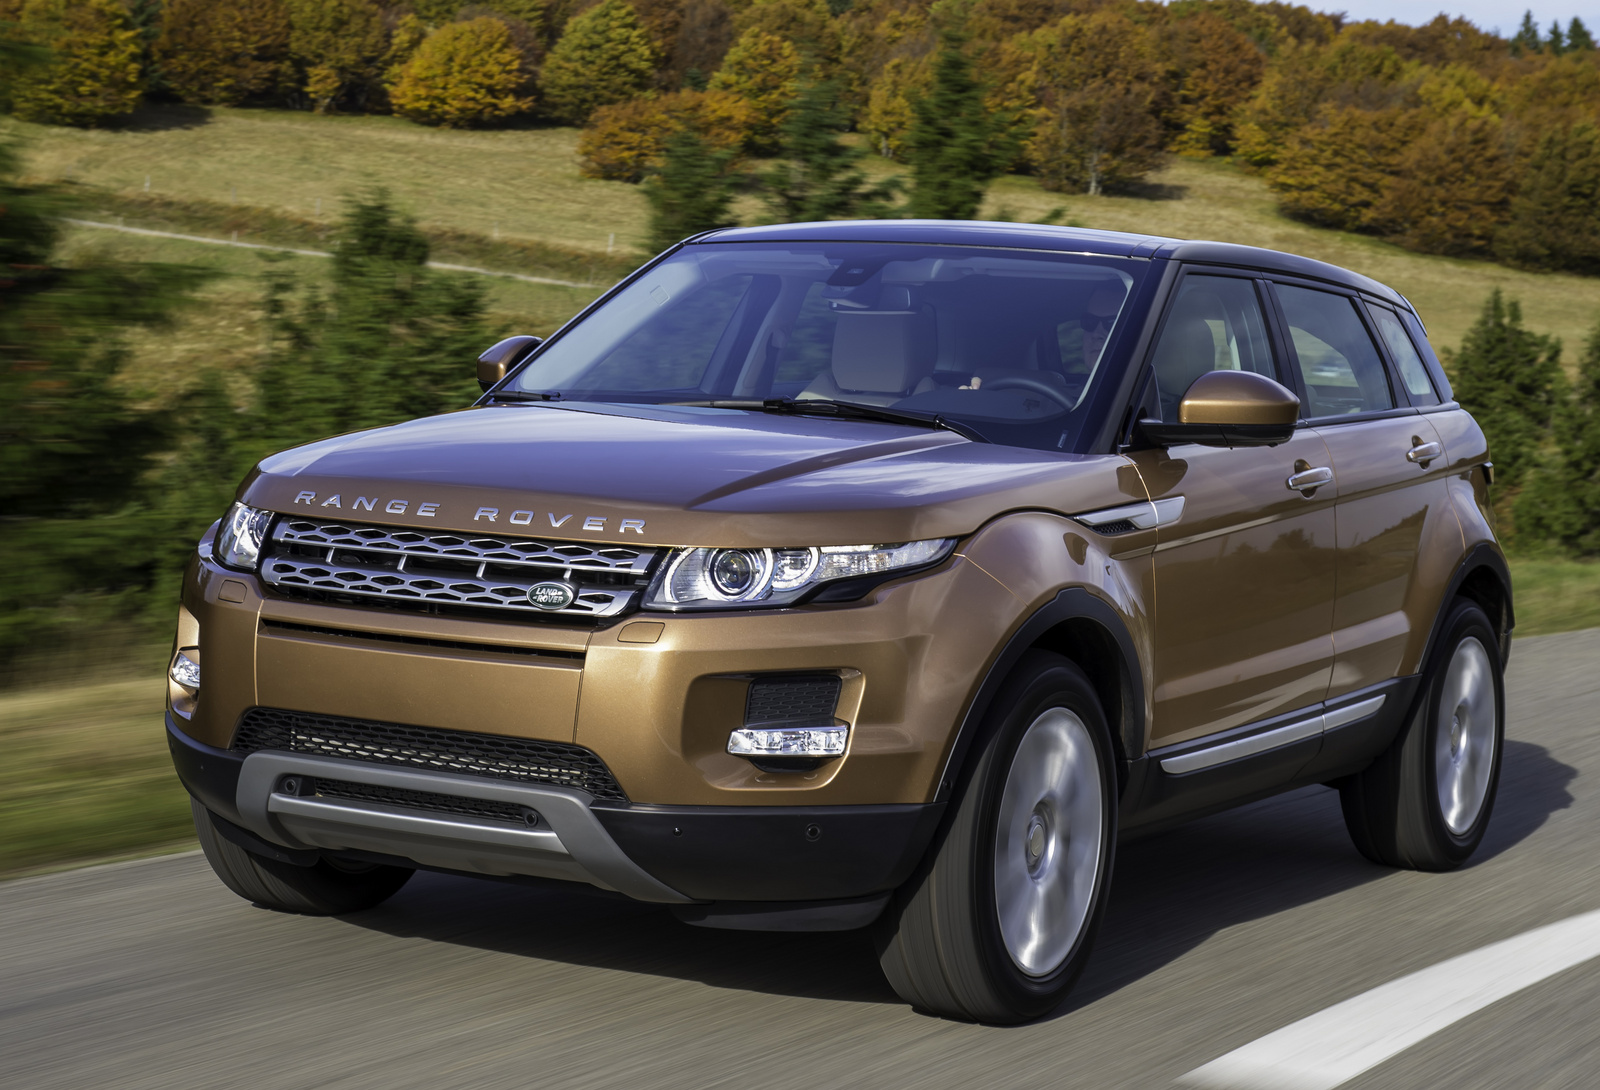 2014 land rover range rover evoque review cargurus. Black Bedroom Furniture Sets. Home Design Ideas